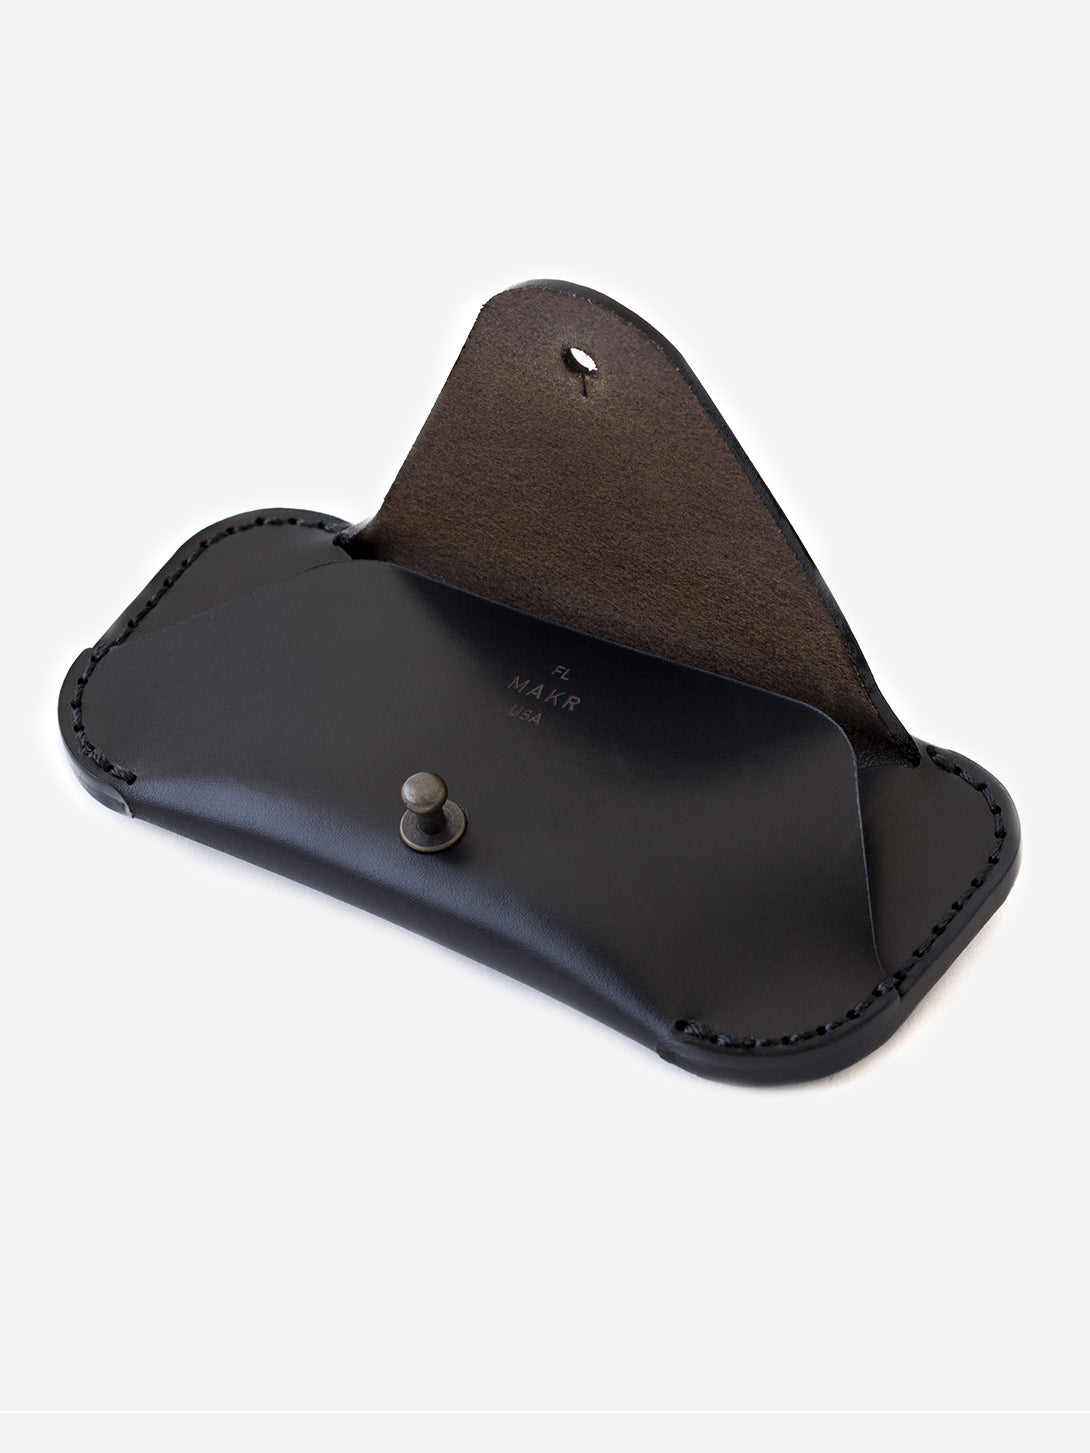 BLACK mens glasses case brown leather eyewear sleeve makr